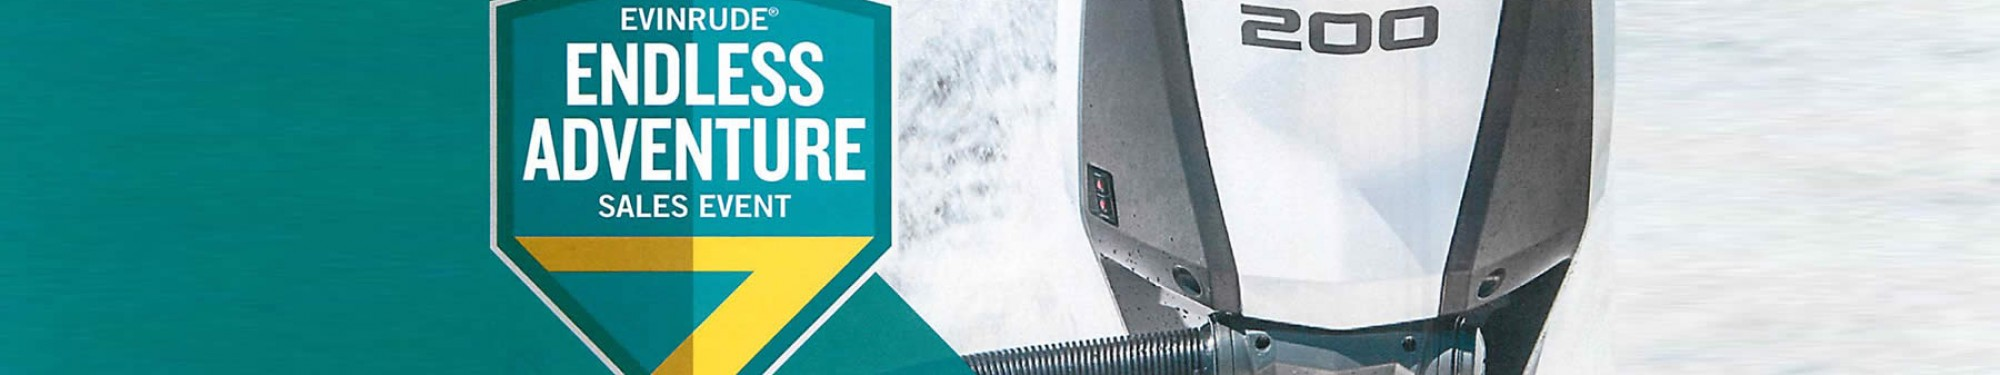 7 year coverage on Evinrude Engines at Anchor Marine - offer ends soon!